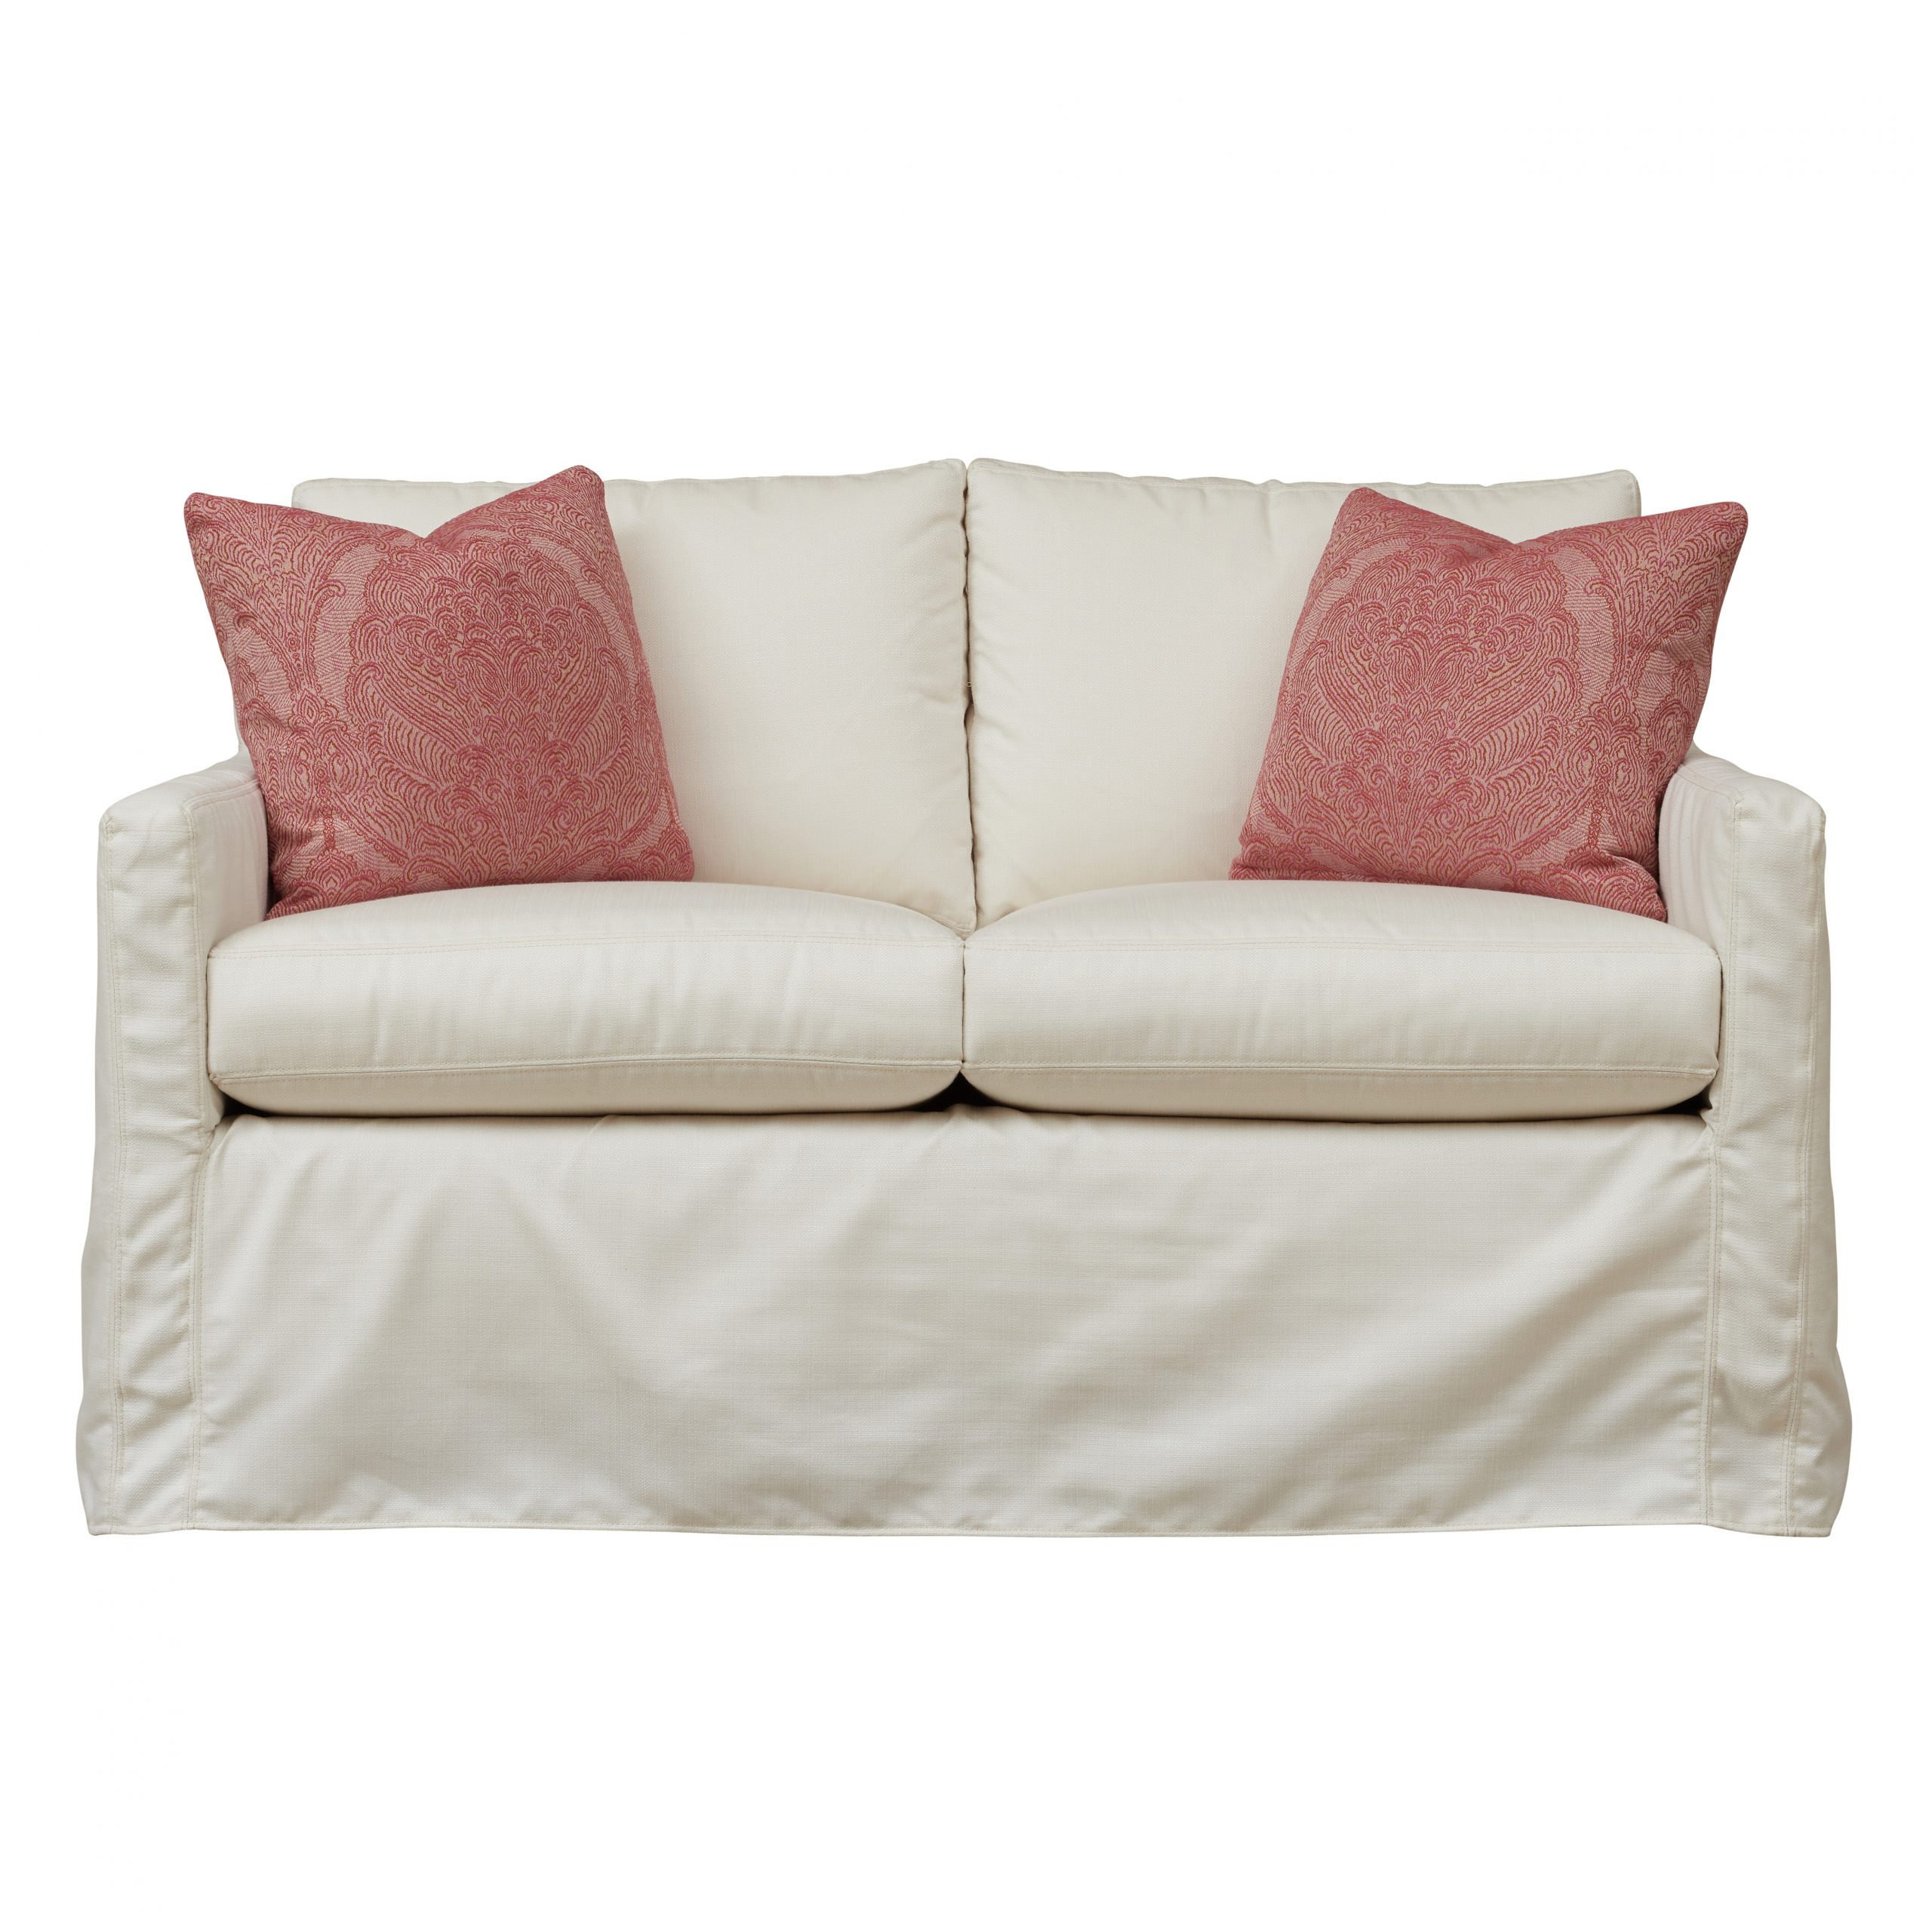 Most Popular Outdoor Loveseat Gliders With Cushion Within Oscar Outdoor Slipcover Loveseat Glider – Southern Furniture (View 21 of 30)